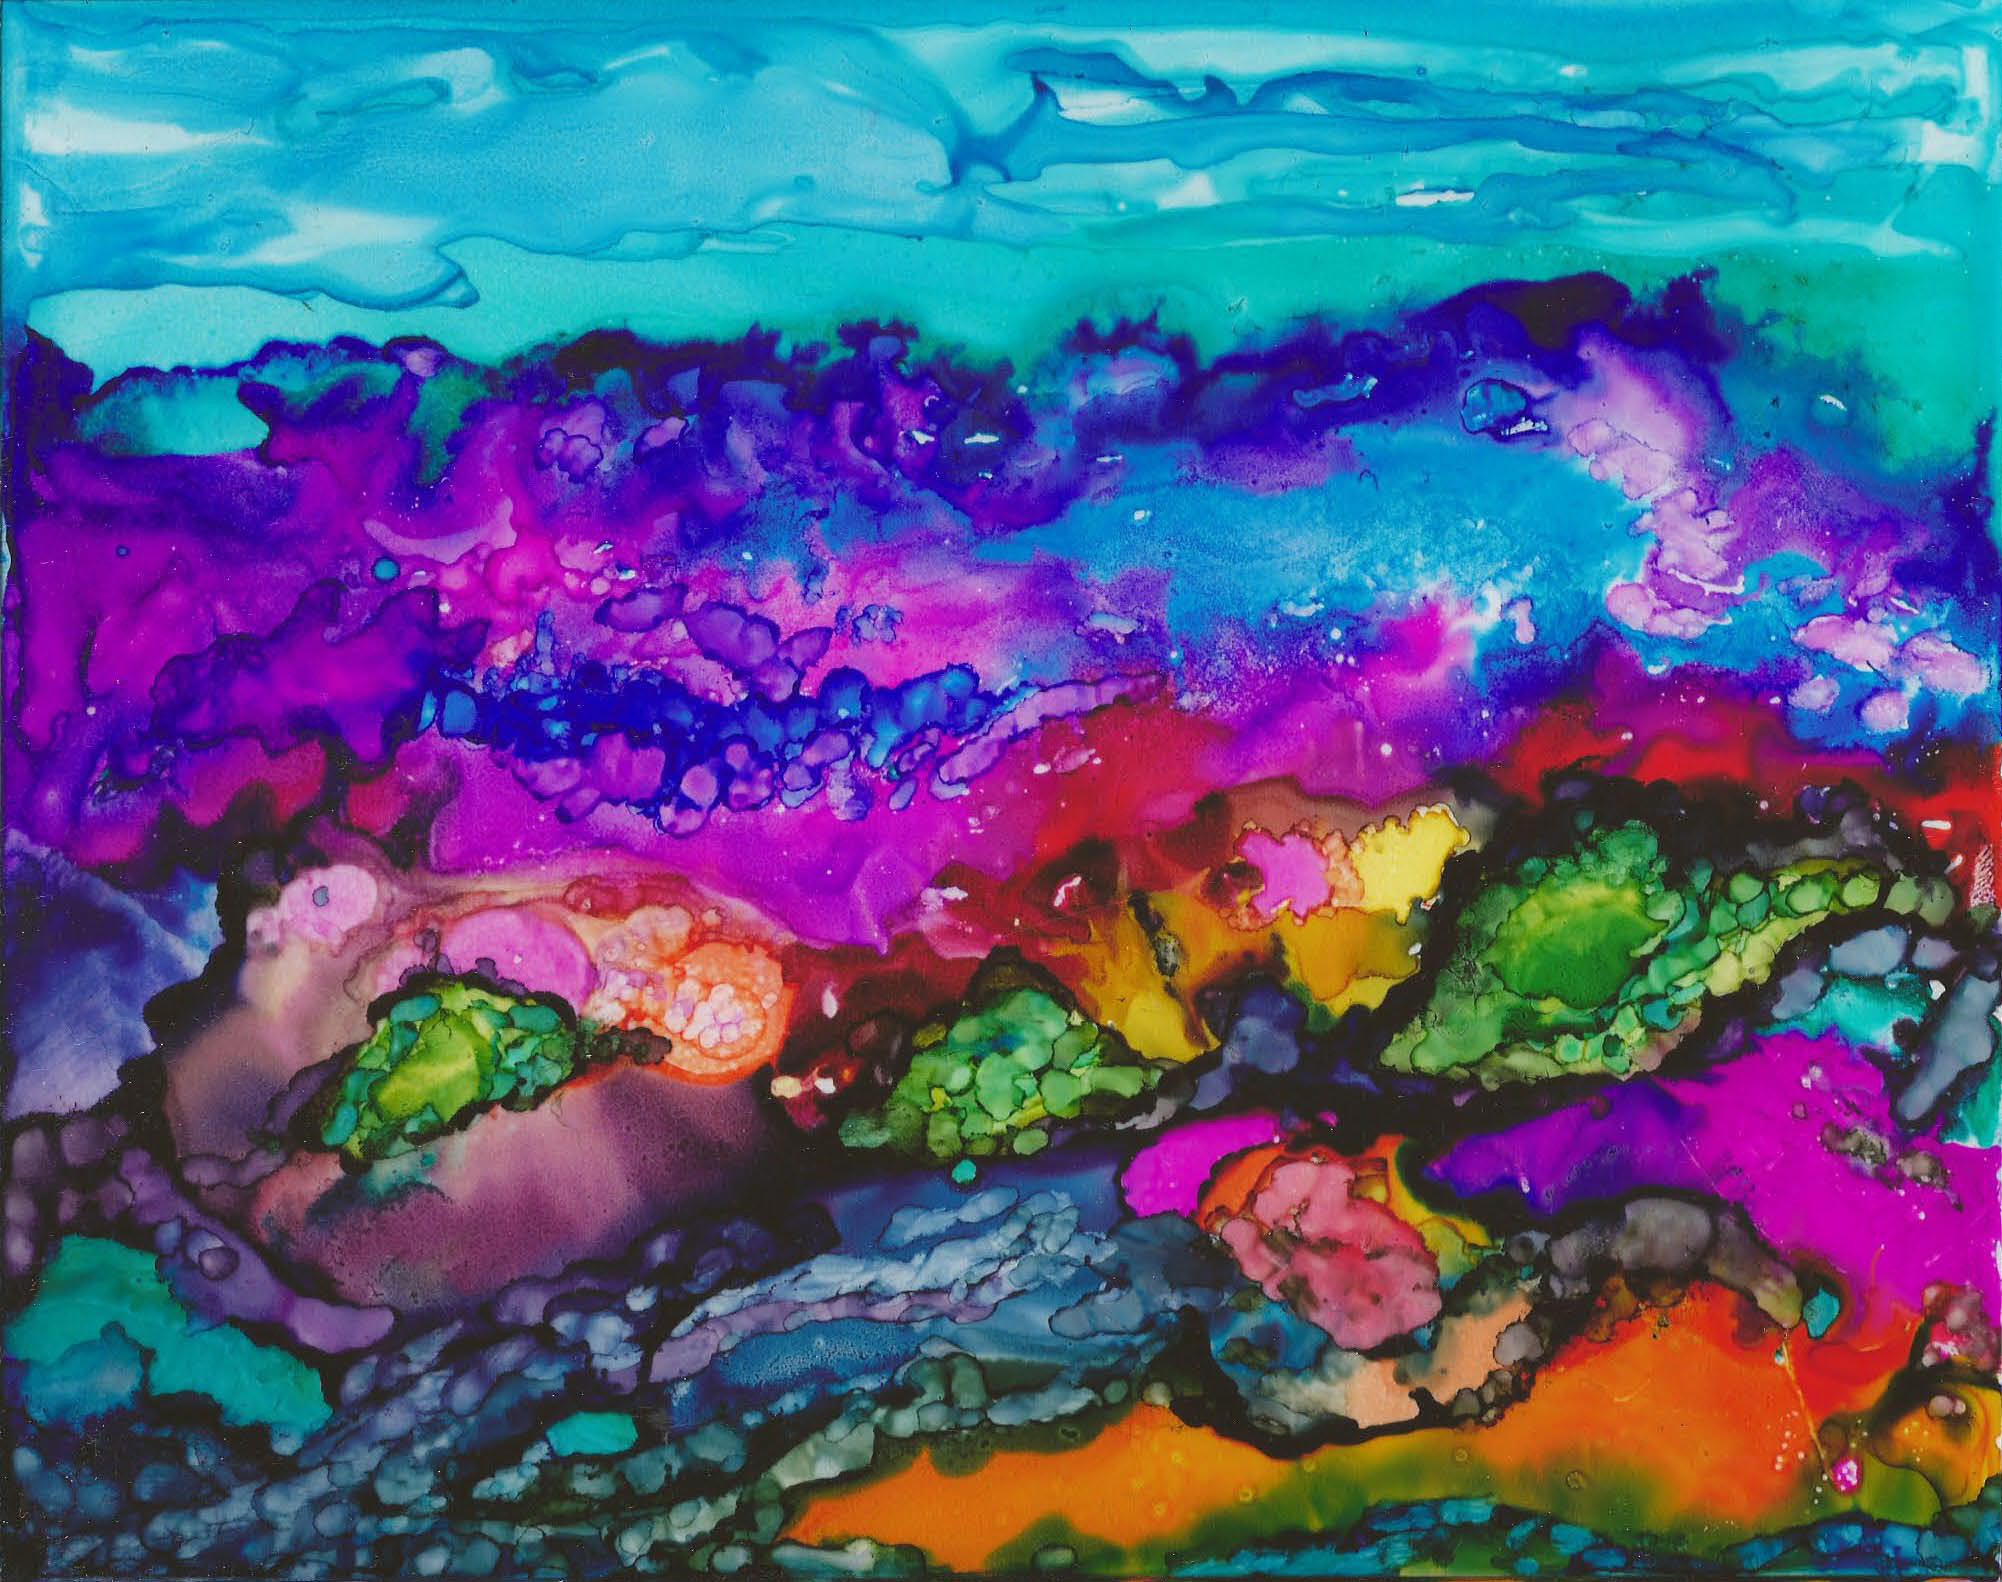 Colorful Landscape - Alcohol Ink on Glass - 8 X 10 - Sold - Print Available